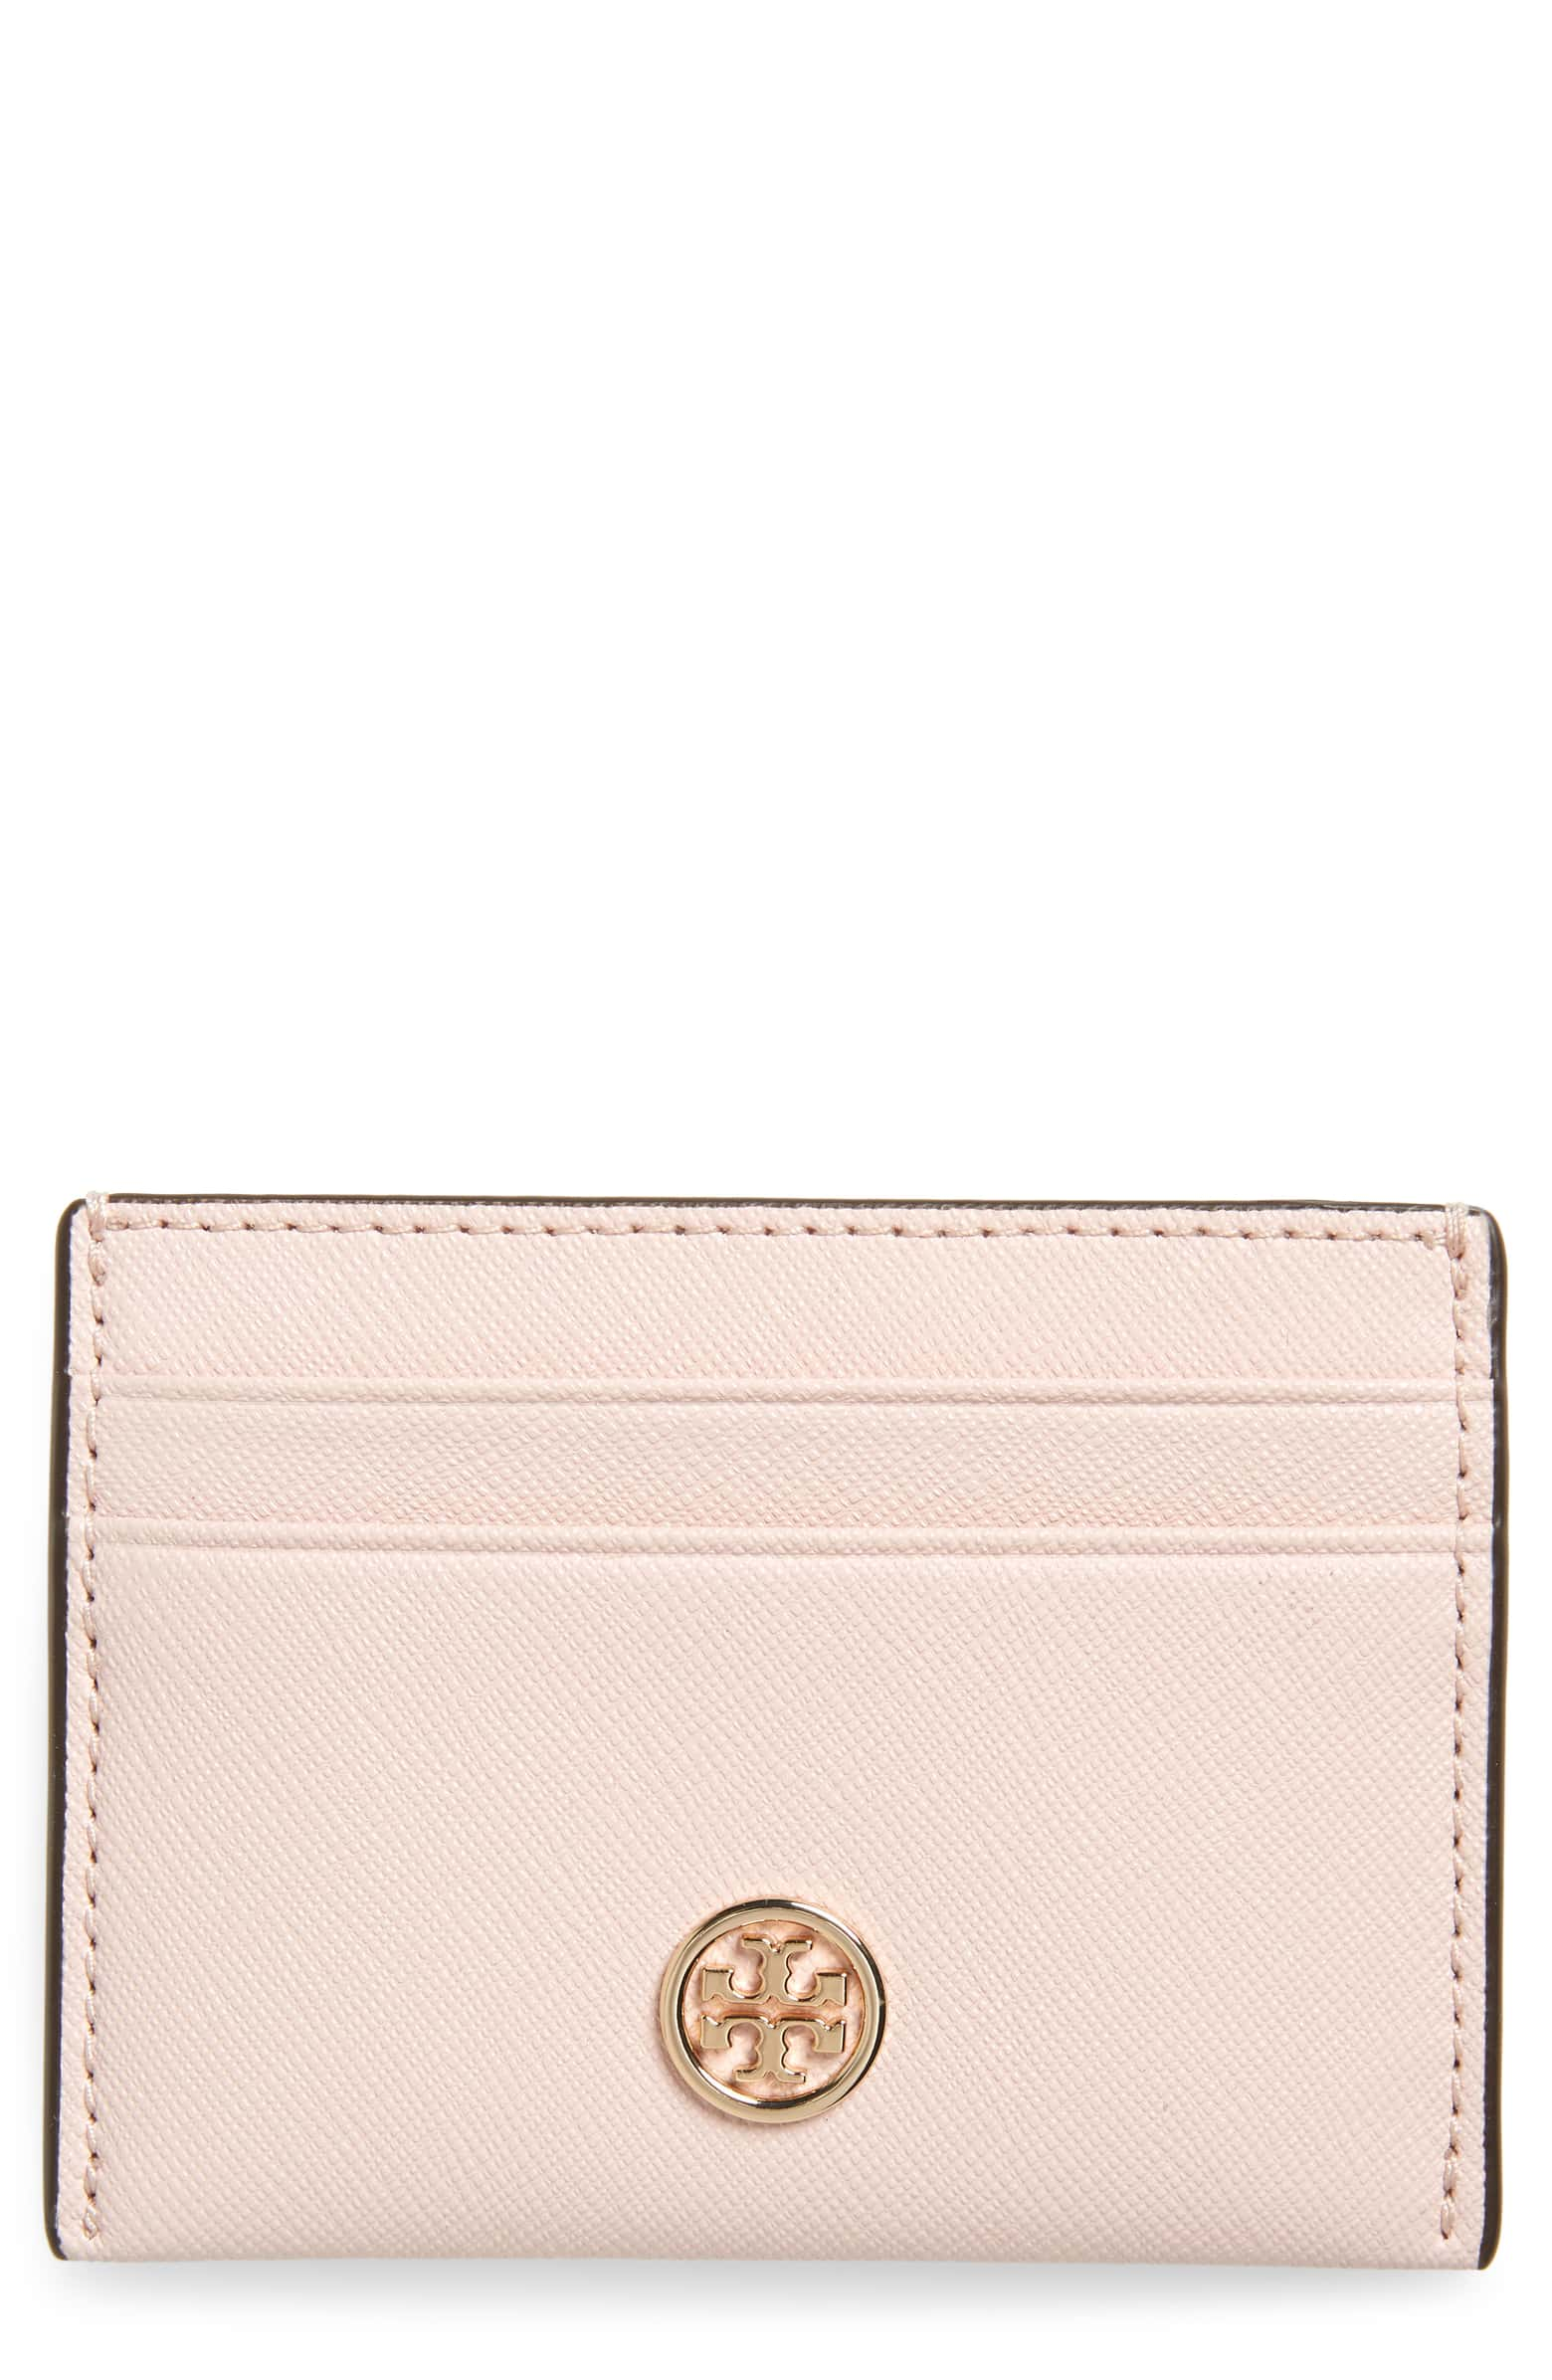 blush tory burch card case.jpg